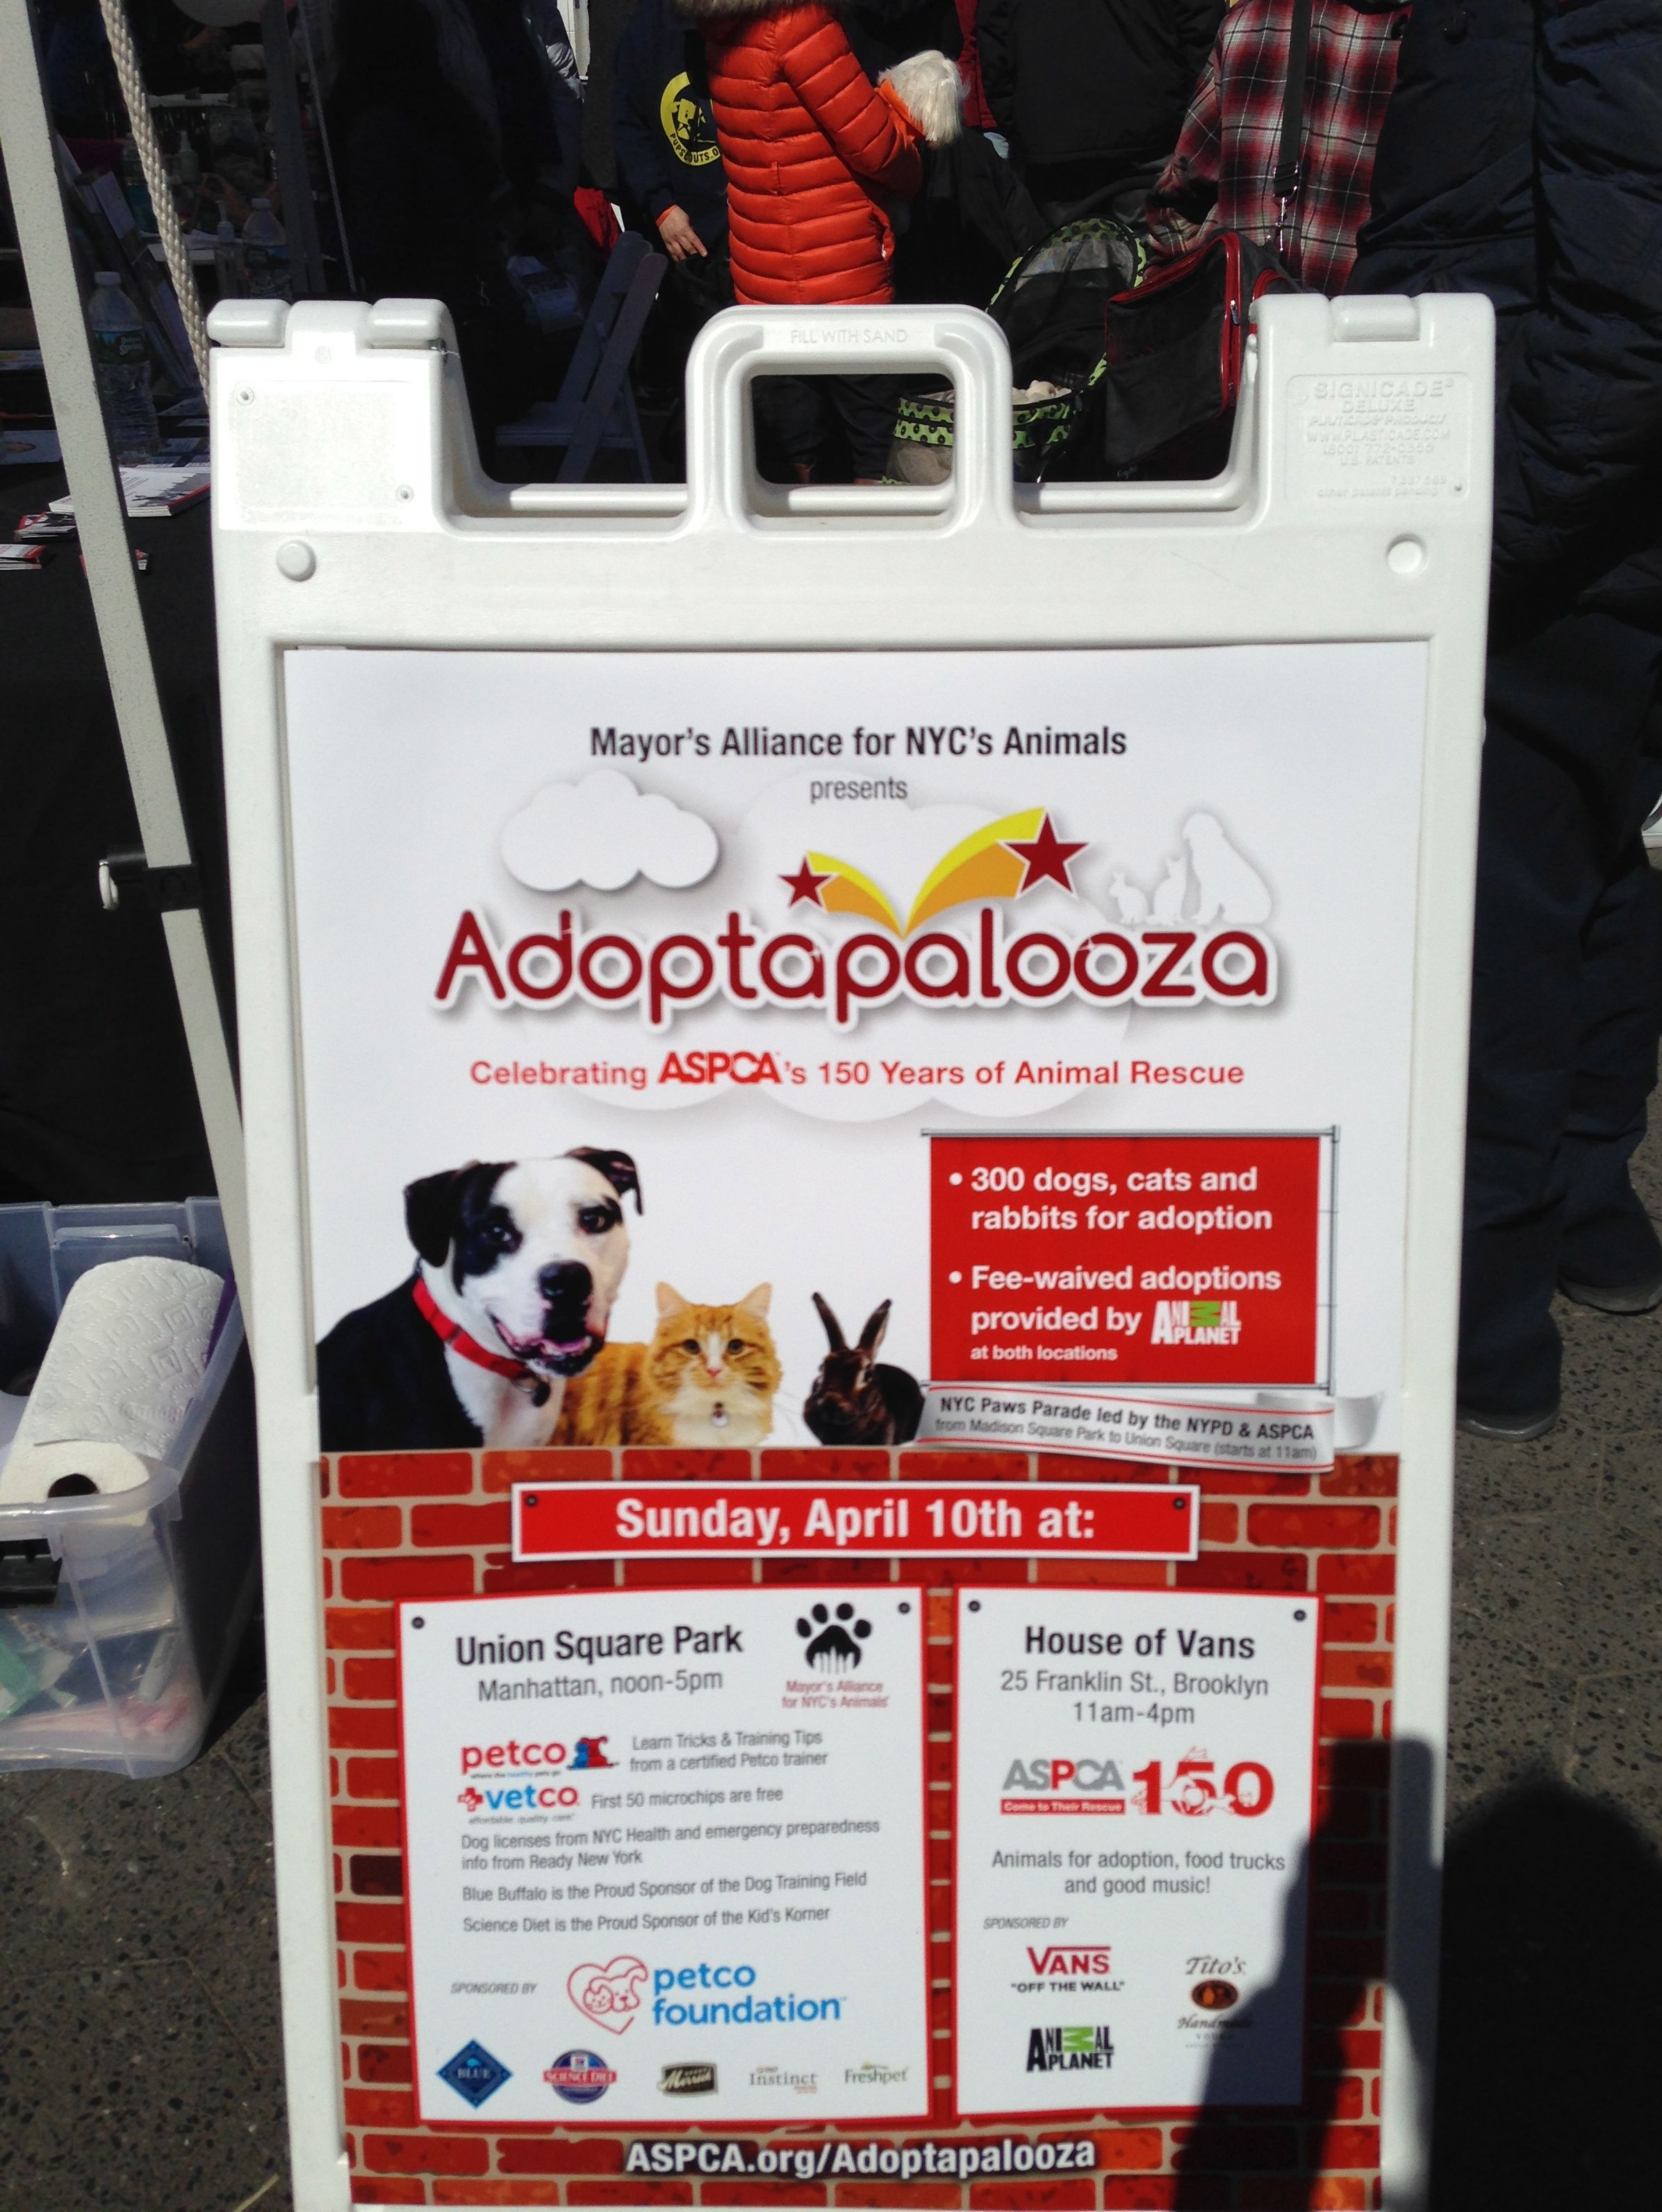 A successful event on Sunday. Make adoption your first